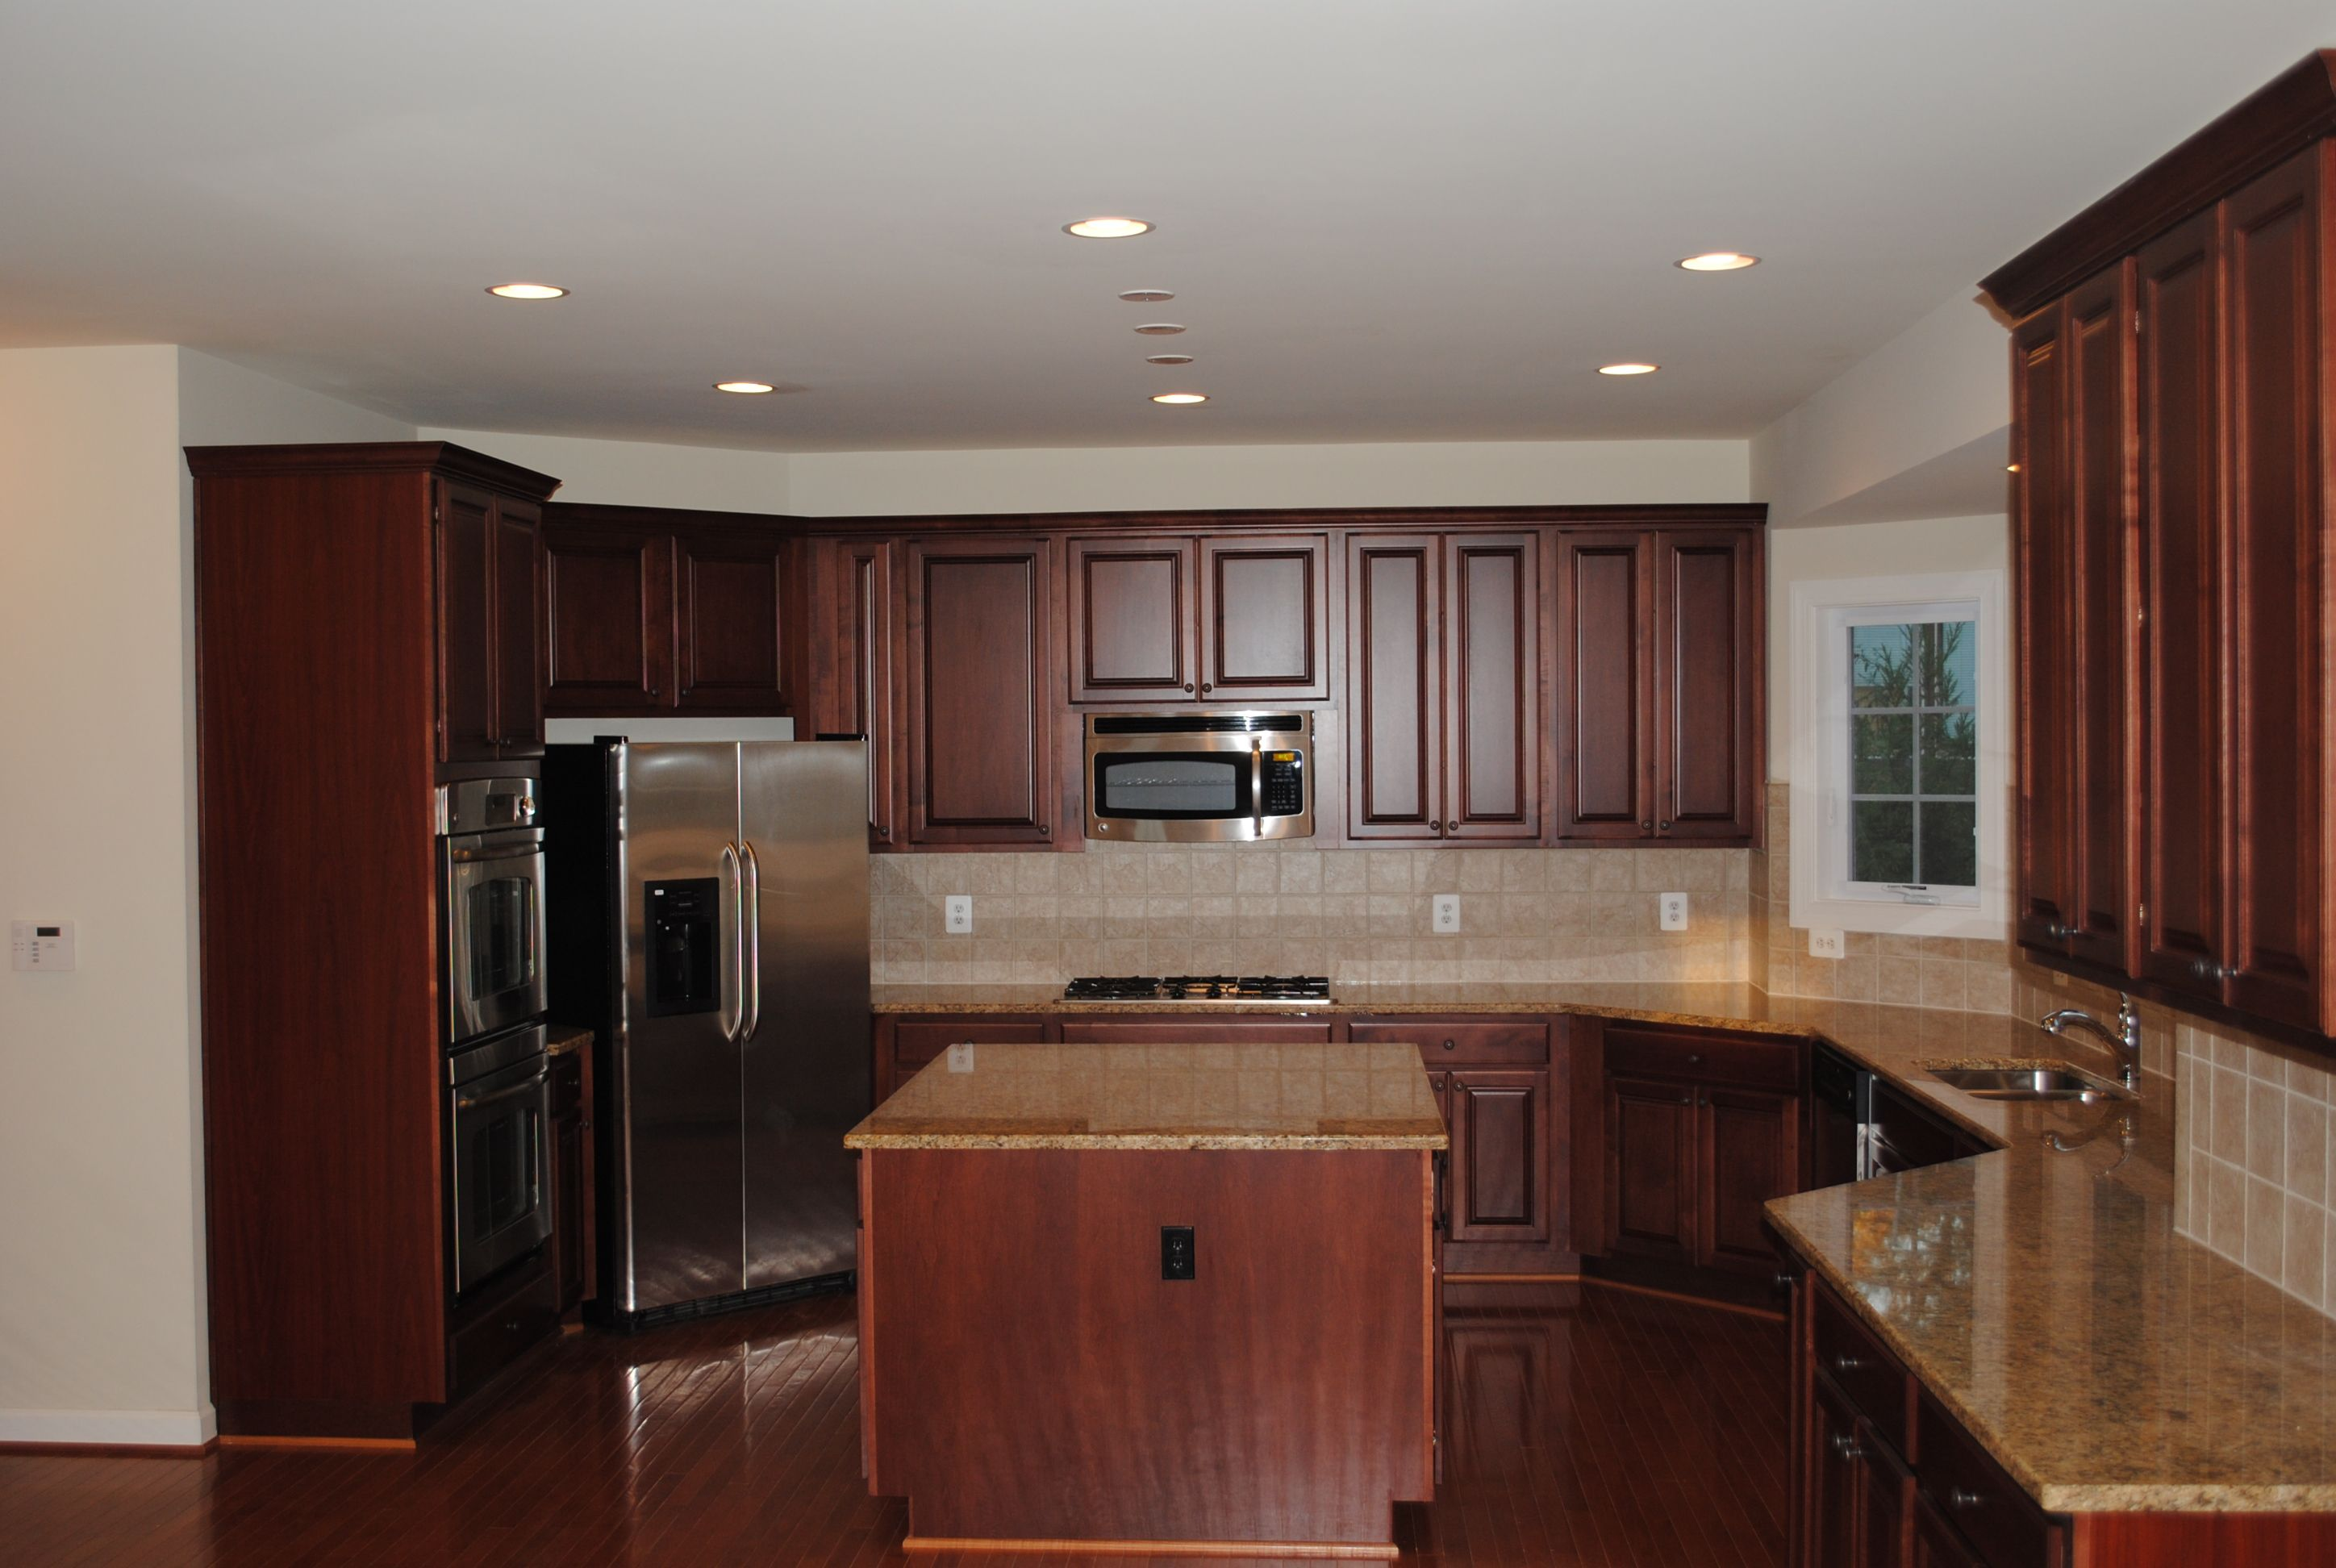 Kitchen With Merlot Cabinets And New Venetian Gold Granite Countertops Gold Granite Countertops Kitchen New Venetian Gold Granite